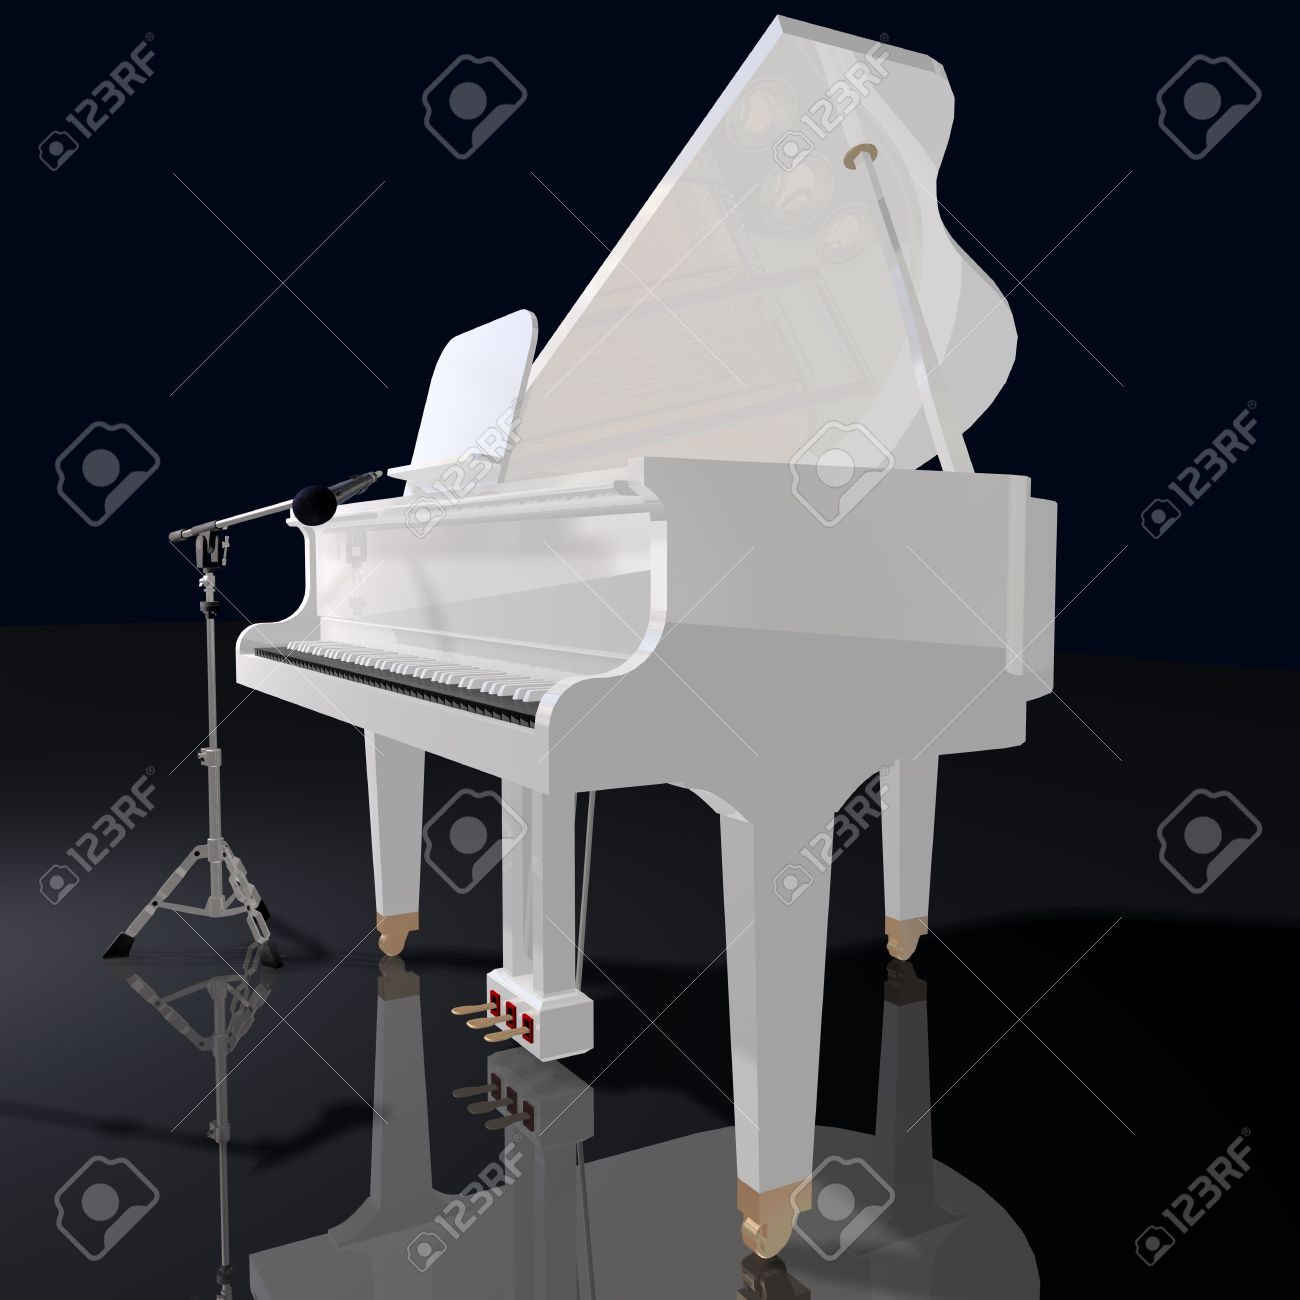 Piano Black Background Gand Piano And Mic on a Black